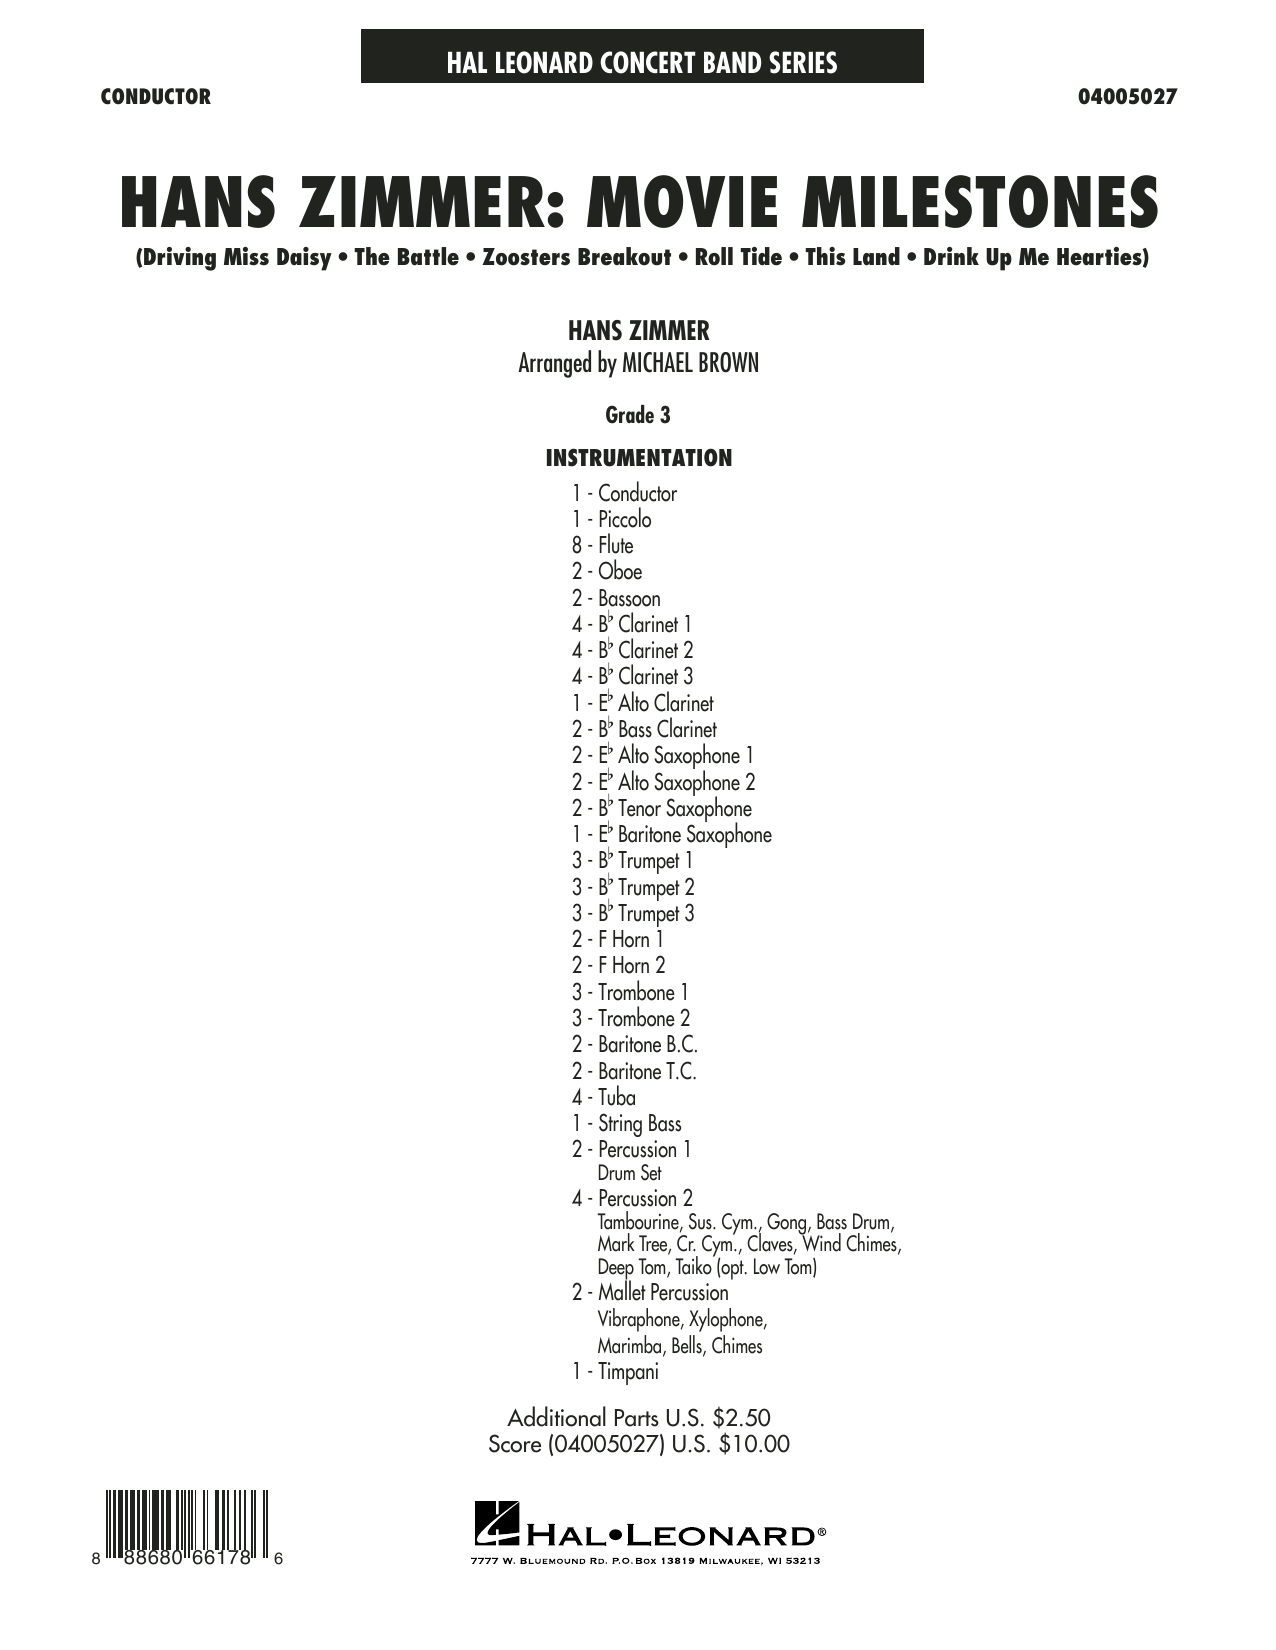 Hans Zimmer: Movie Milestones (COMPLETE) sheet music for concert band by Michael Brown and Hans Zimmer. Score Image Preview.